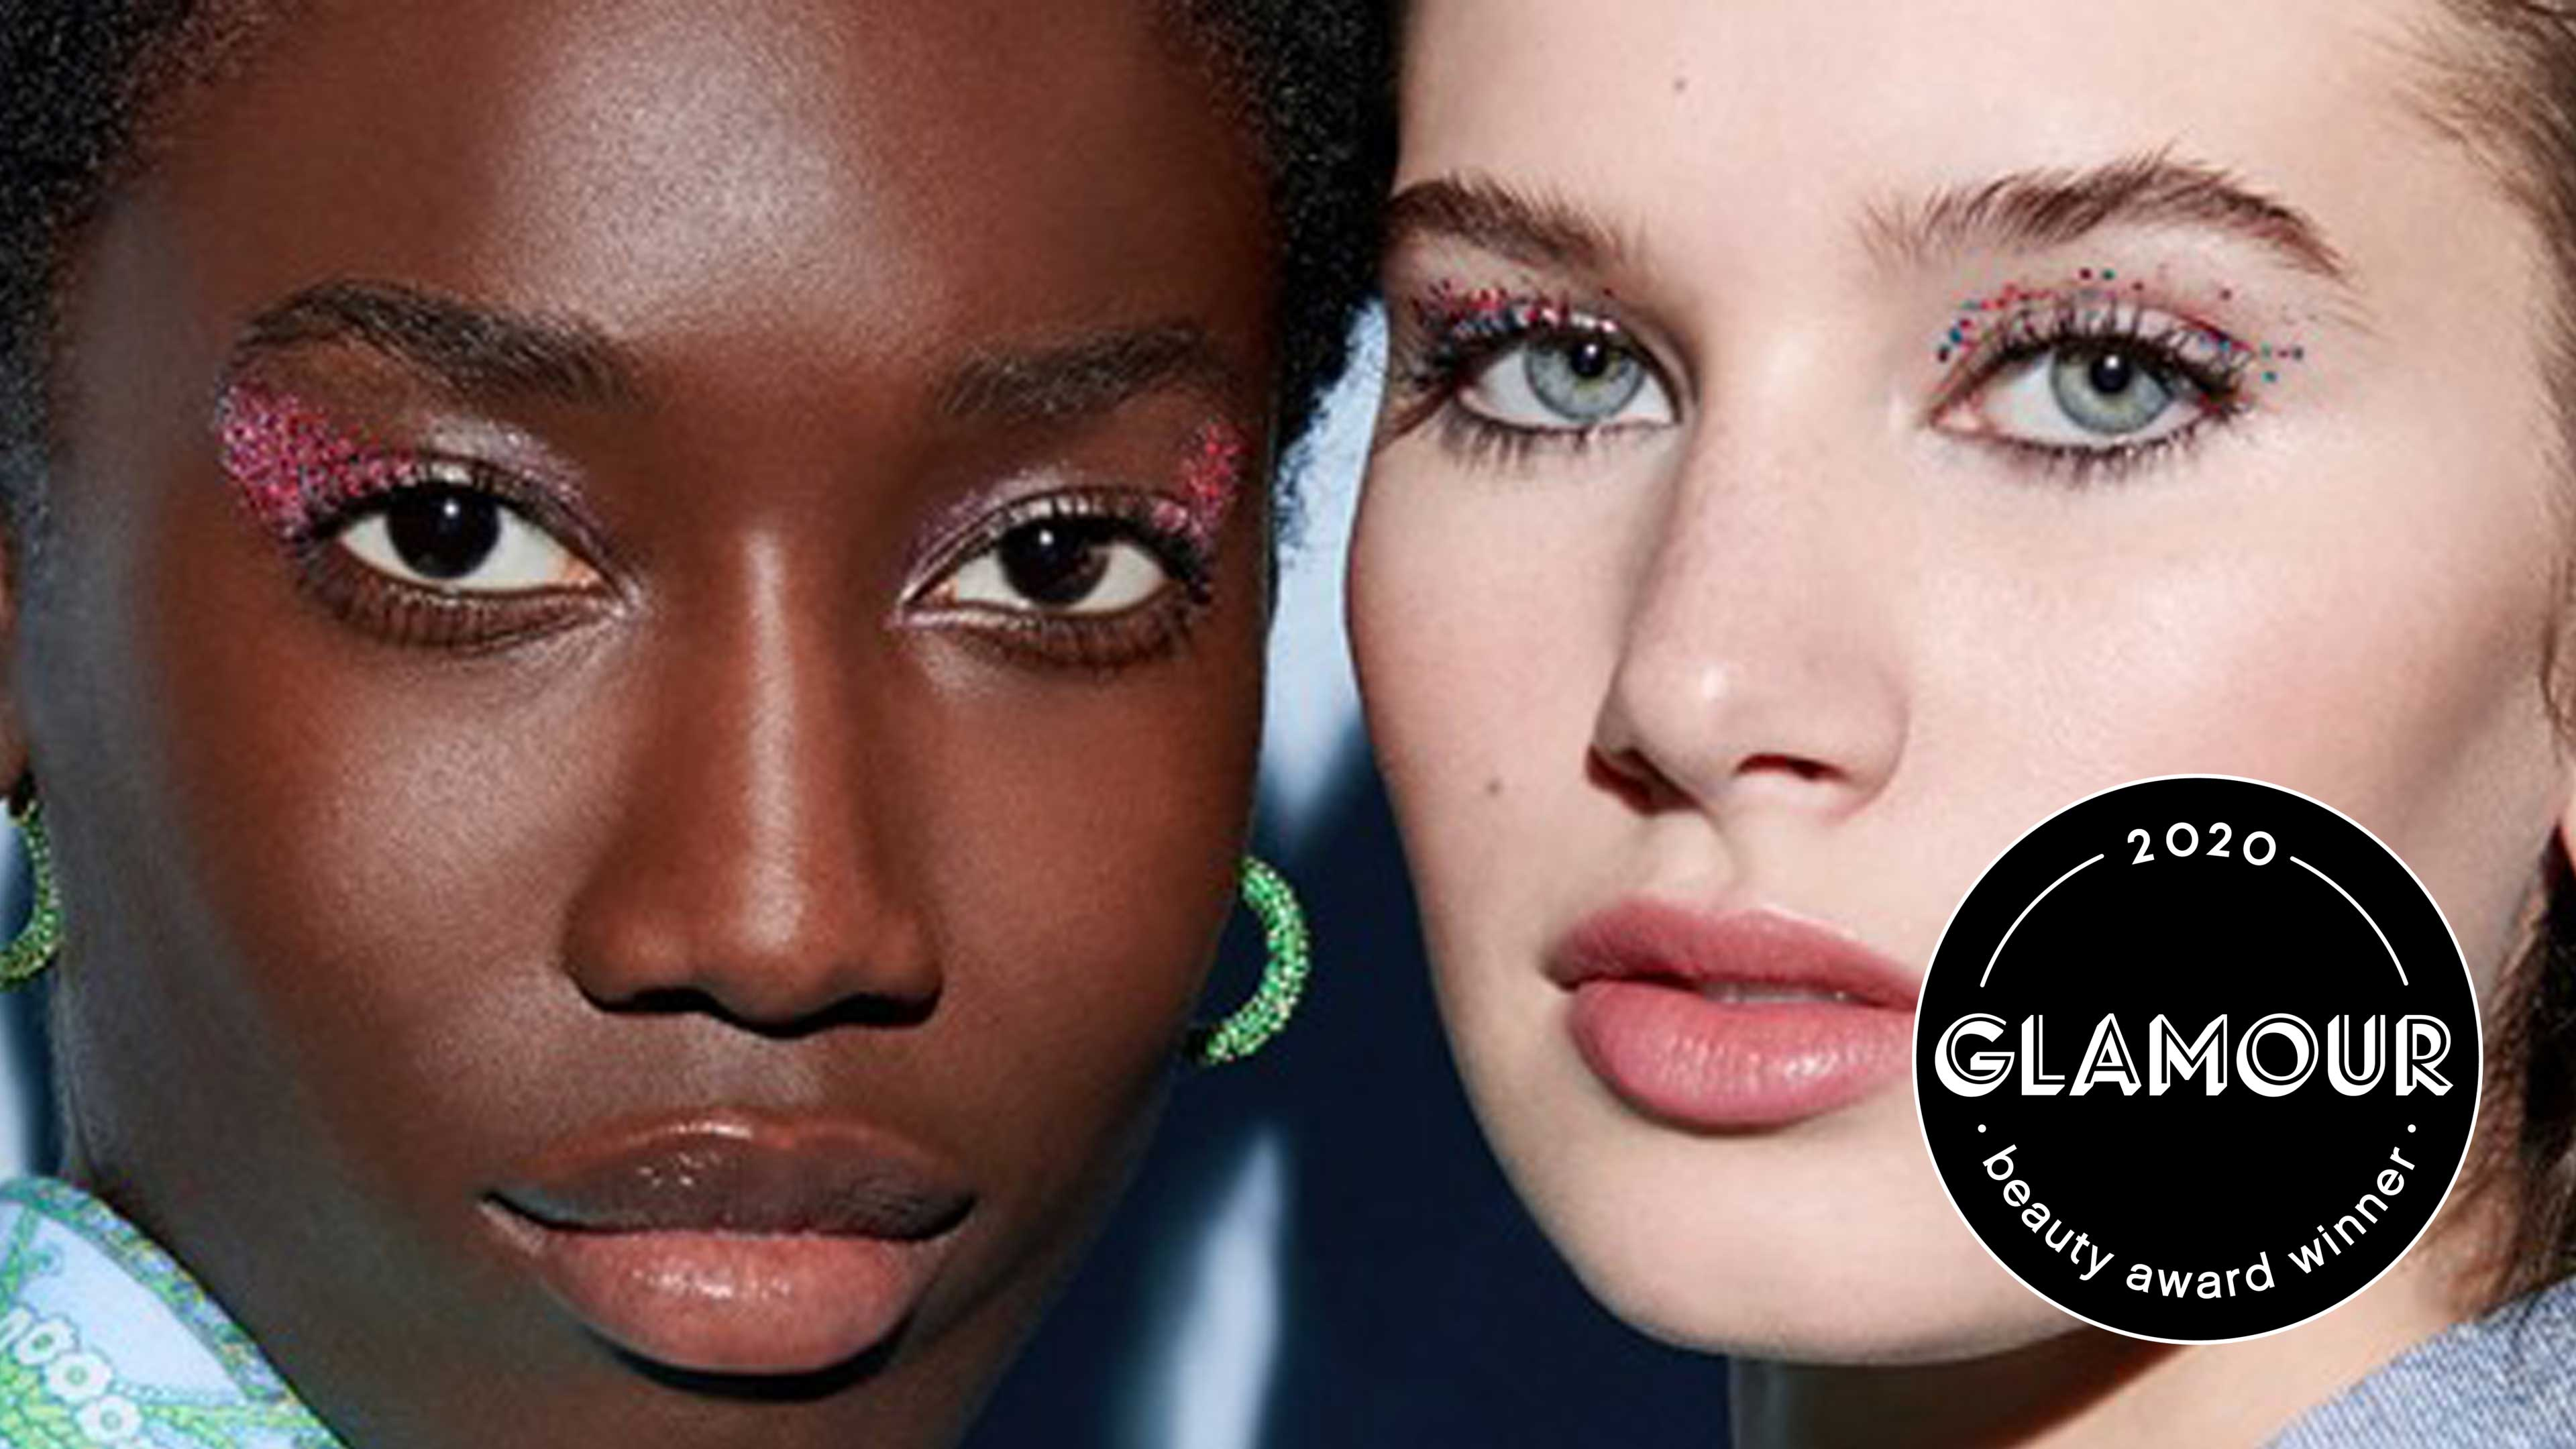 Glamour: The 2020 Beauty Awards